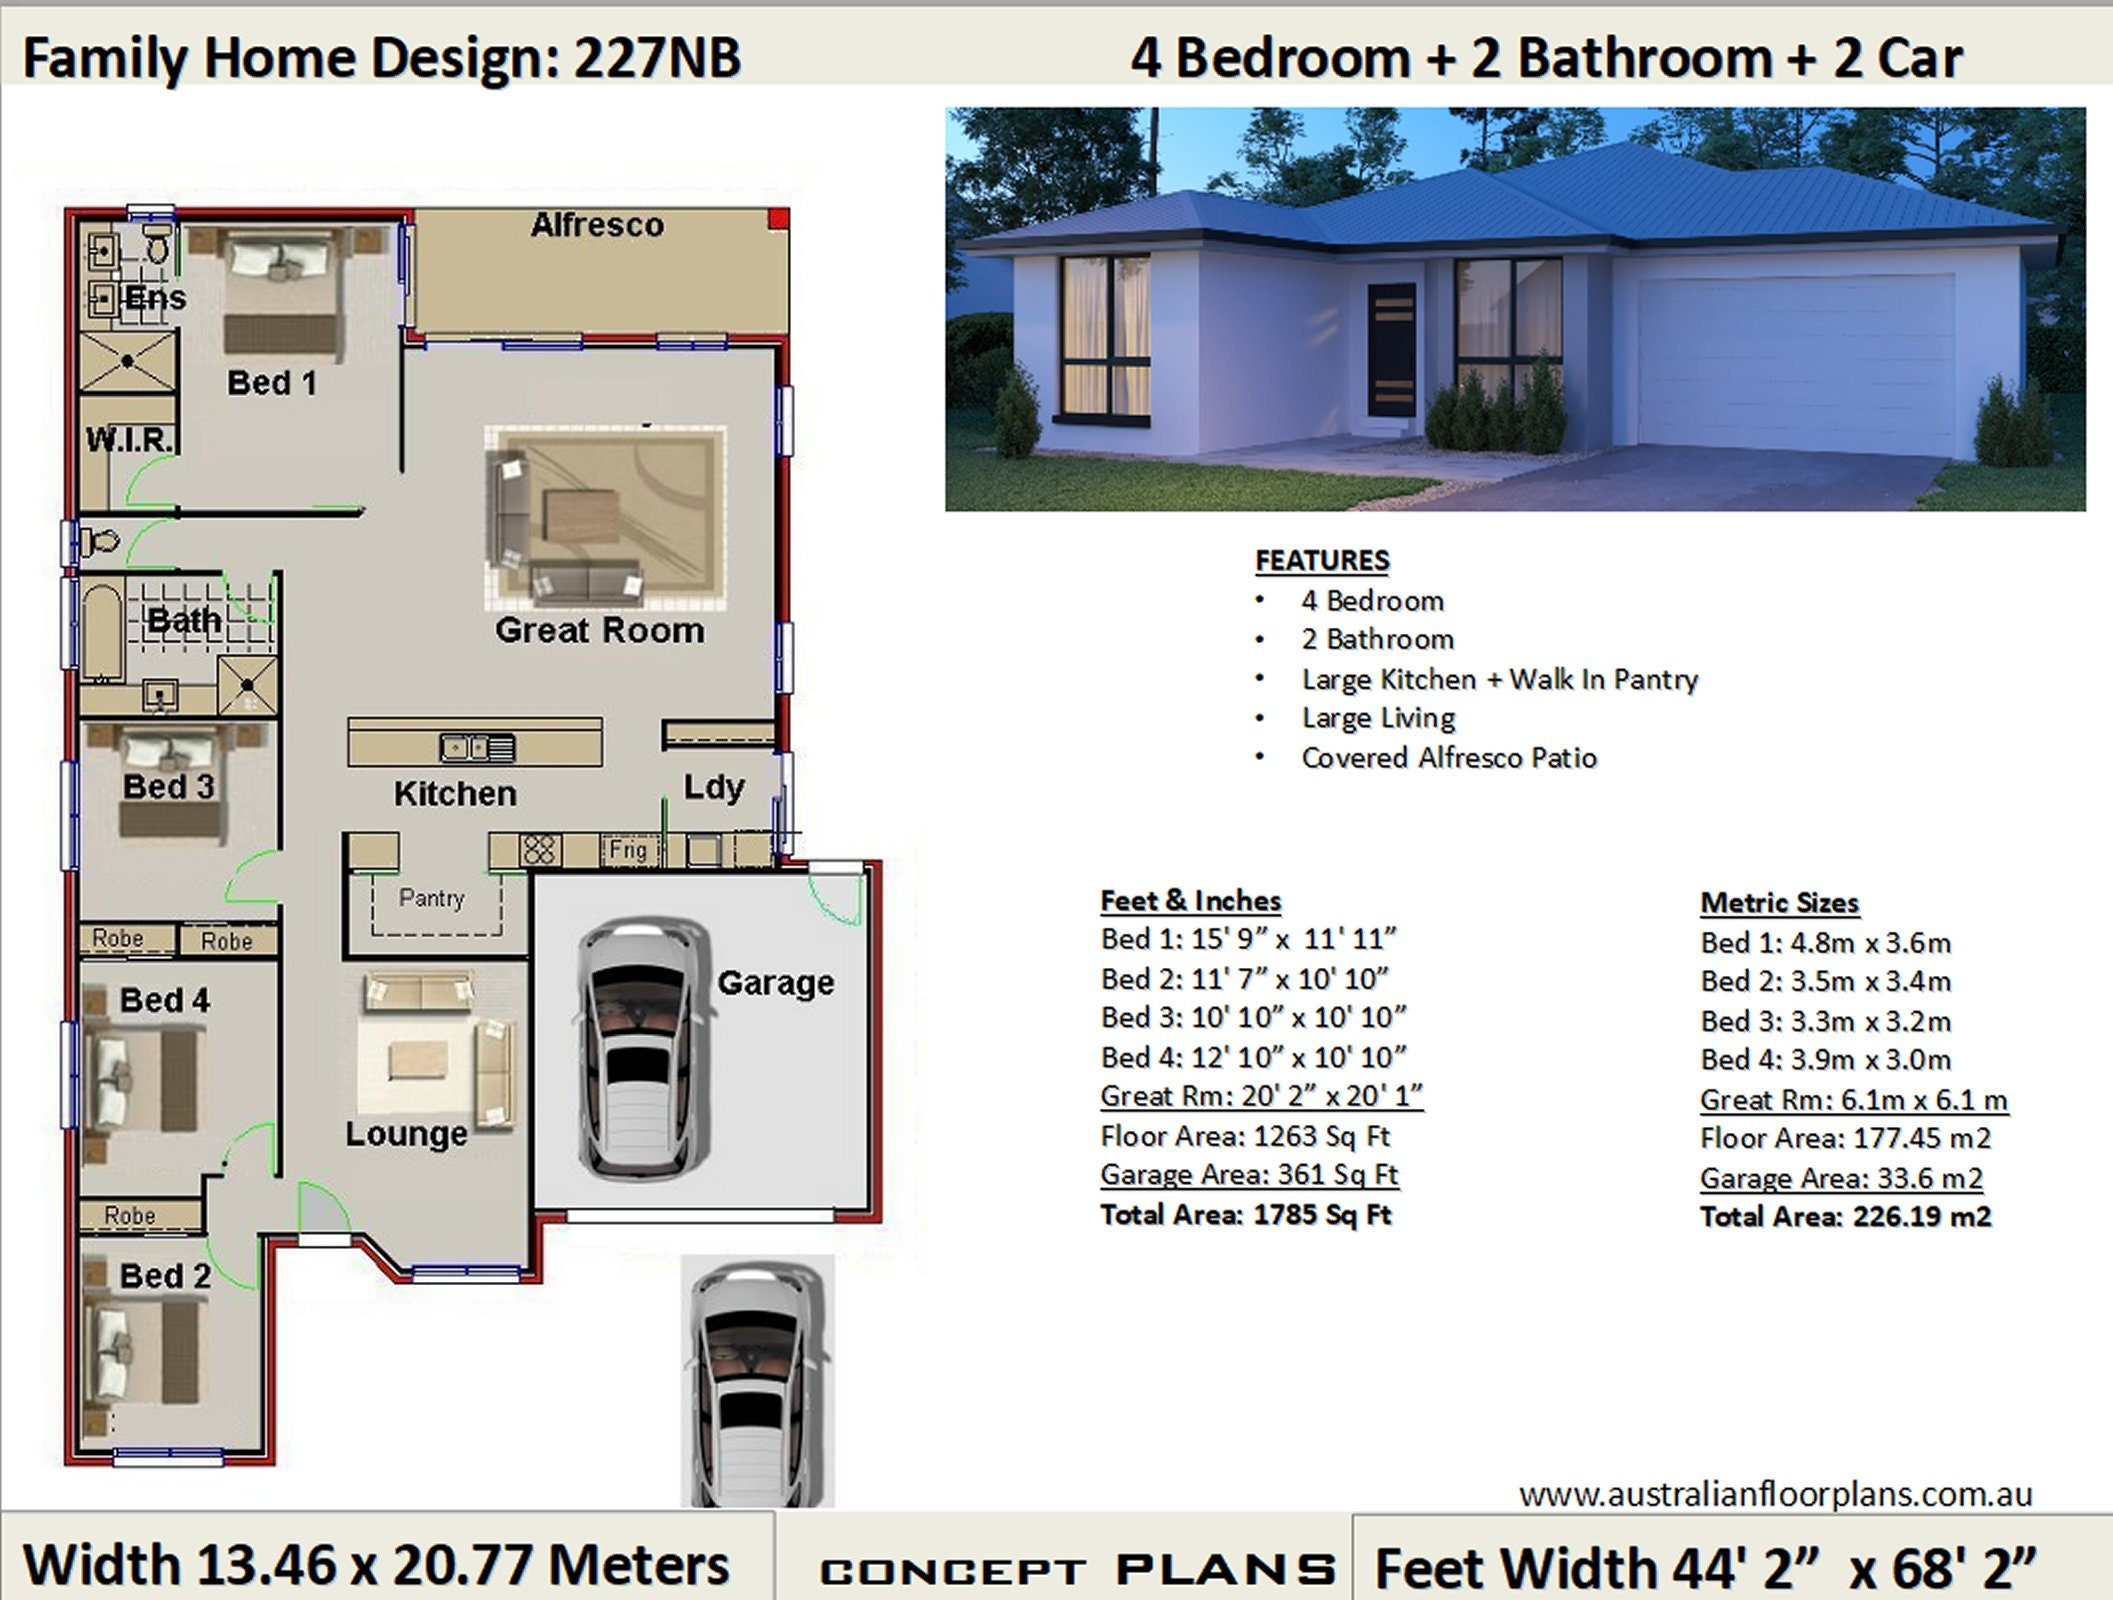 House plans 4 Bedroom house plans Double Garage Home | Etsy